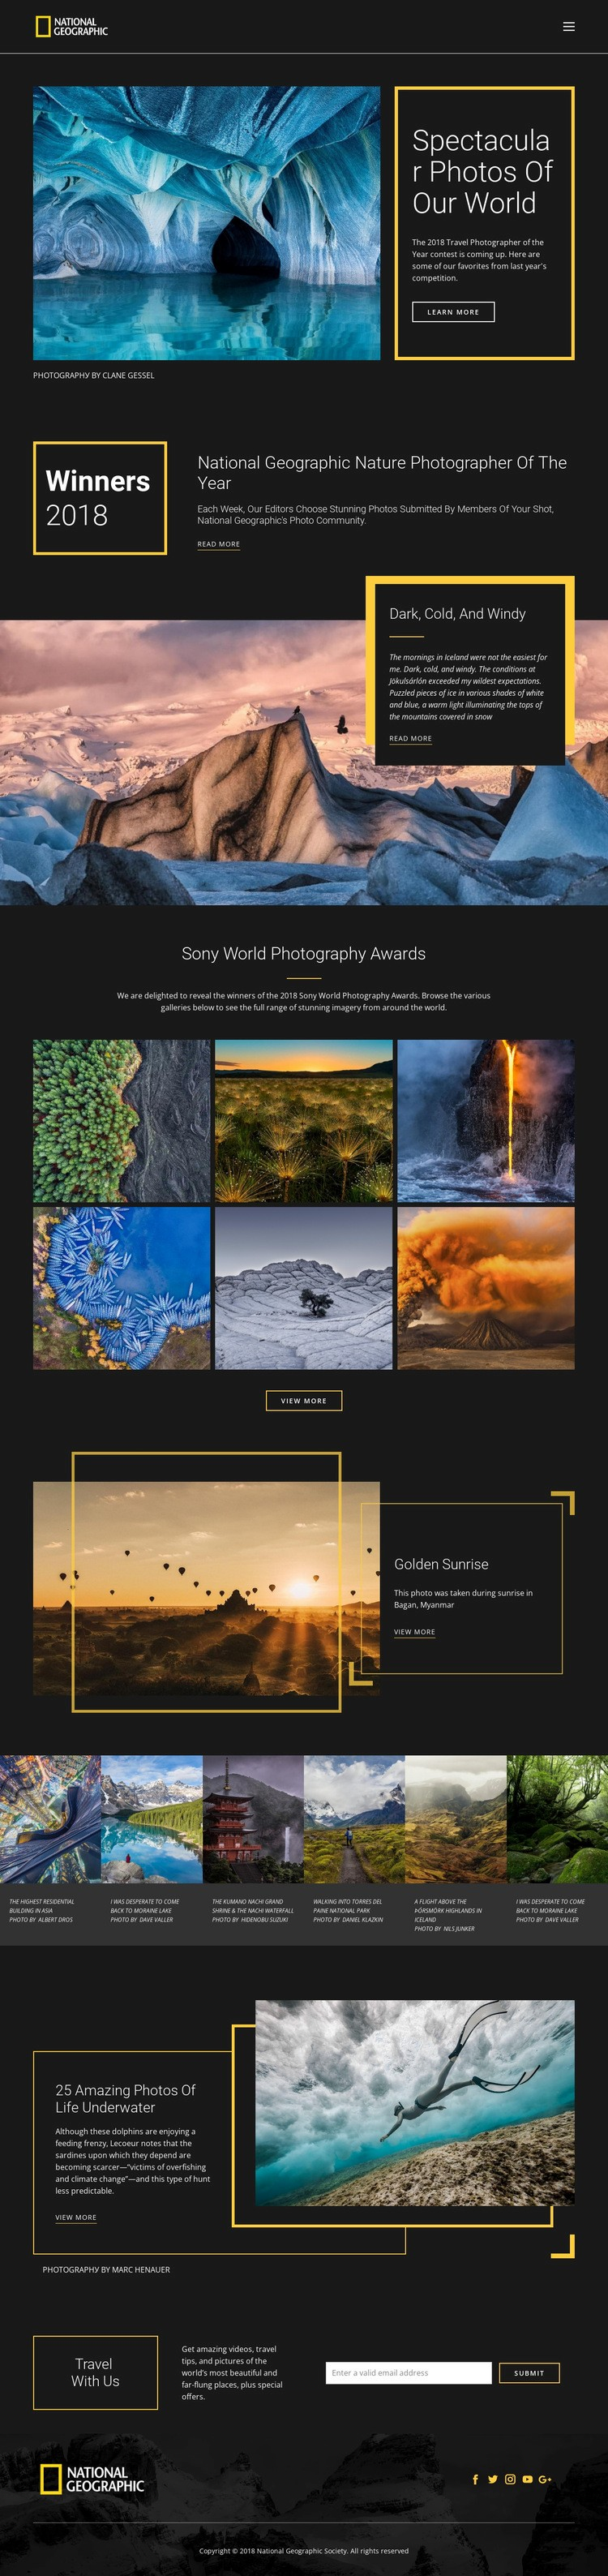 Pictures of nature Html Code Example